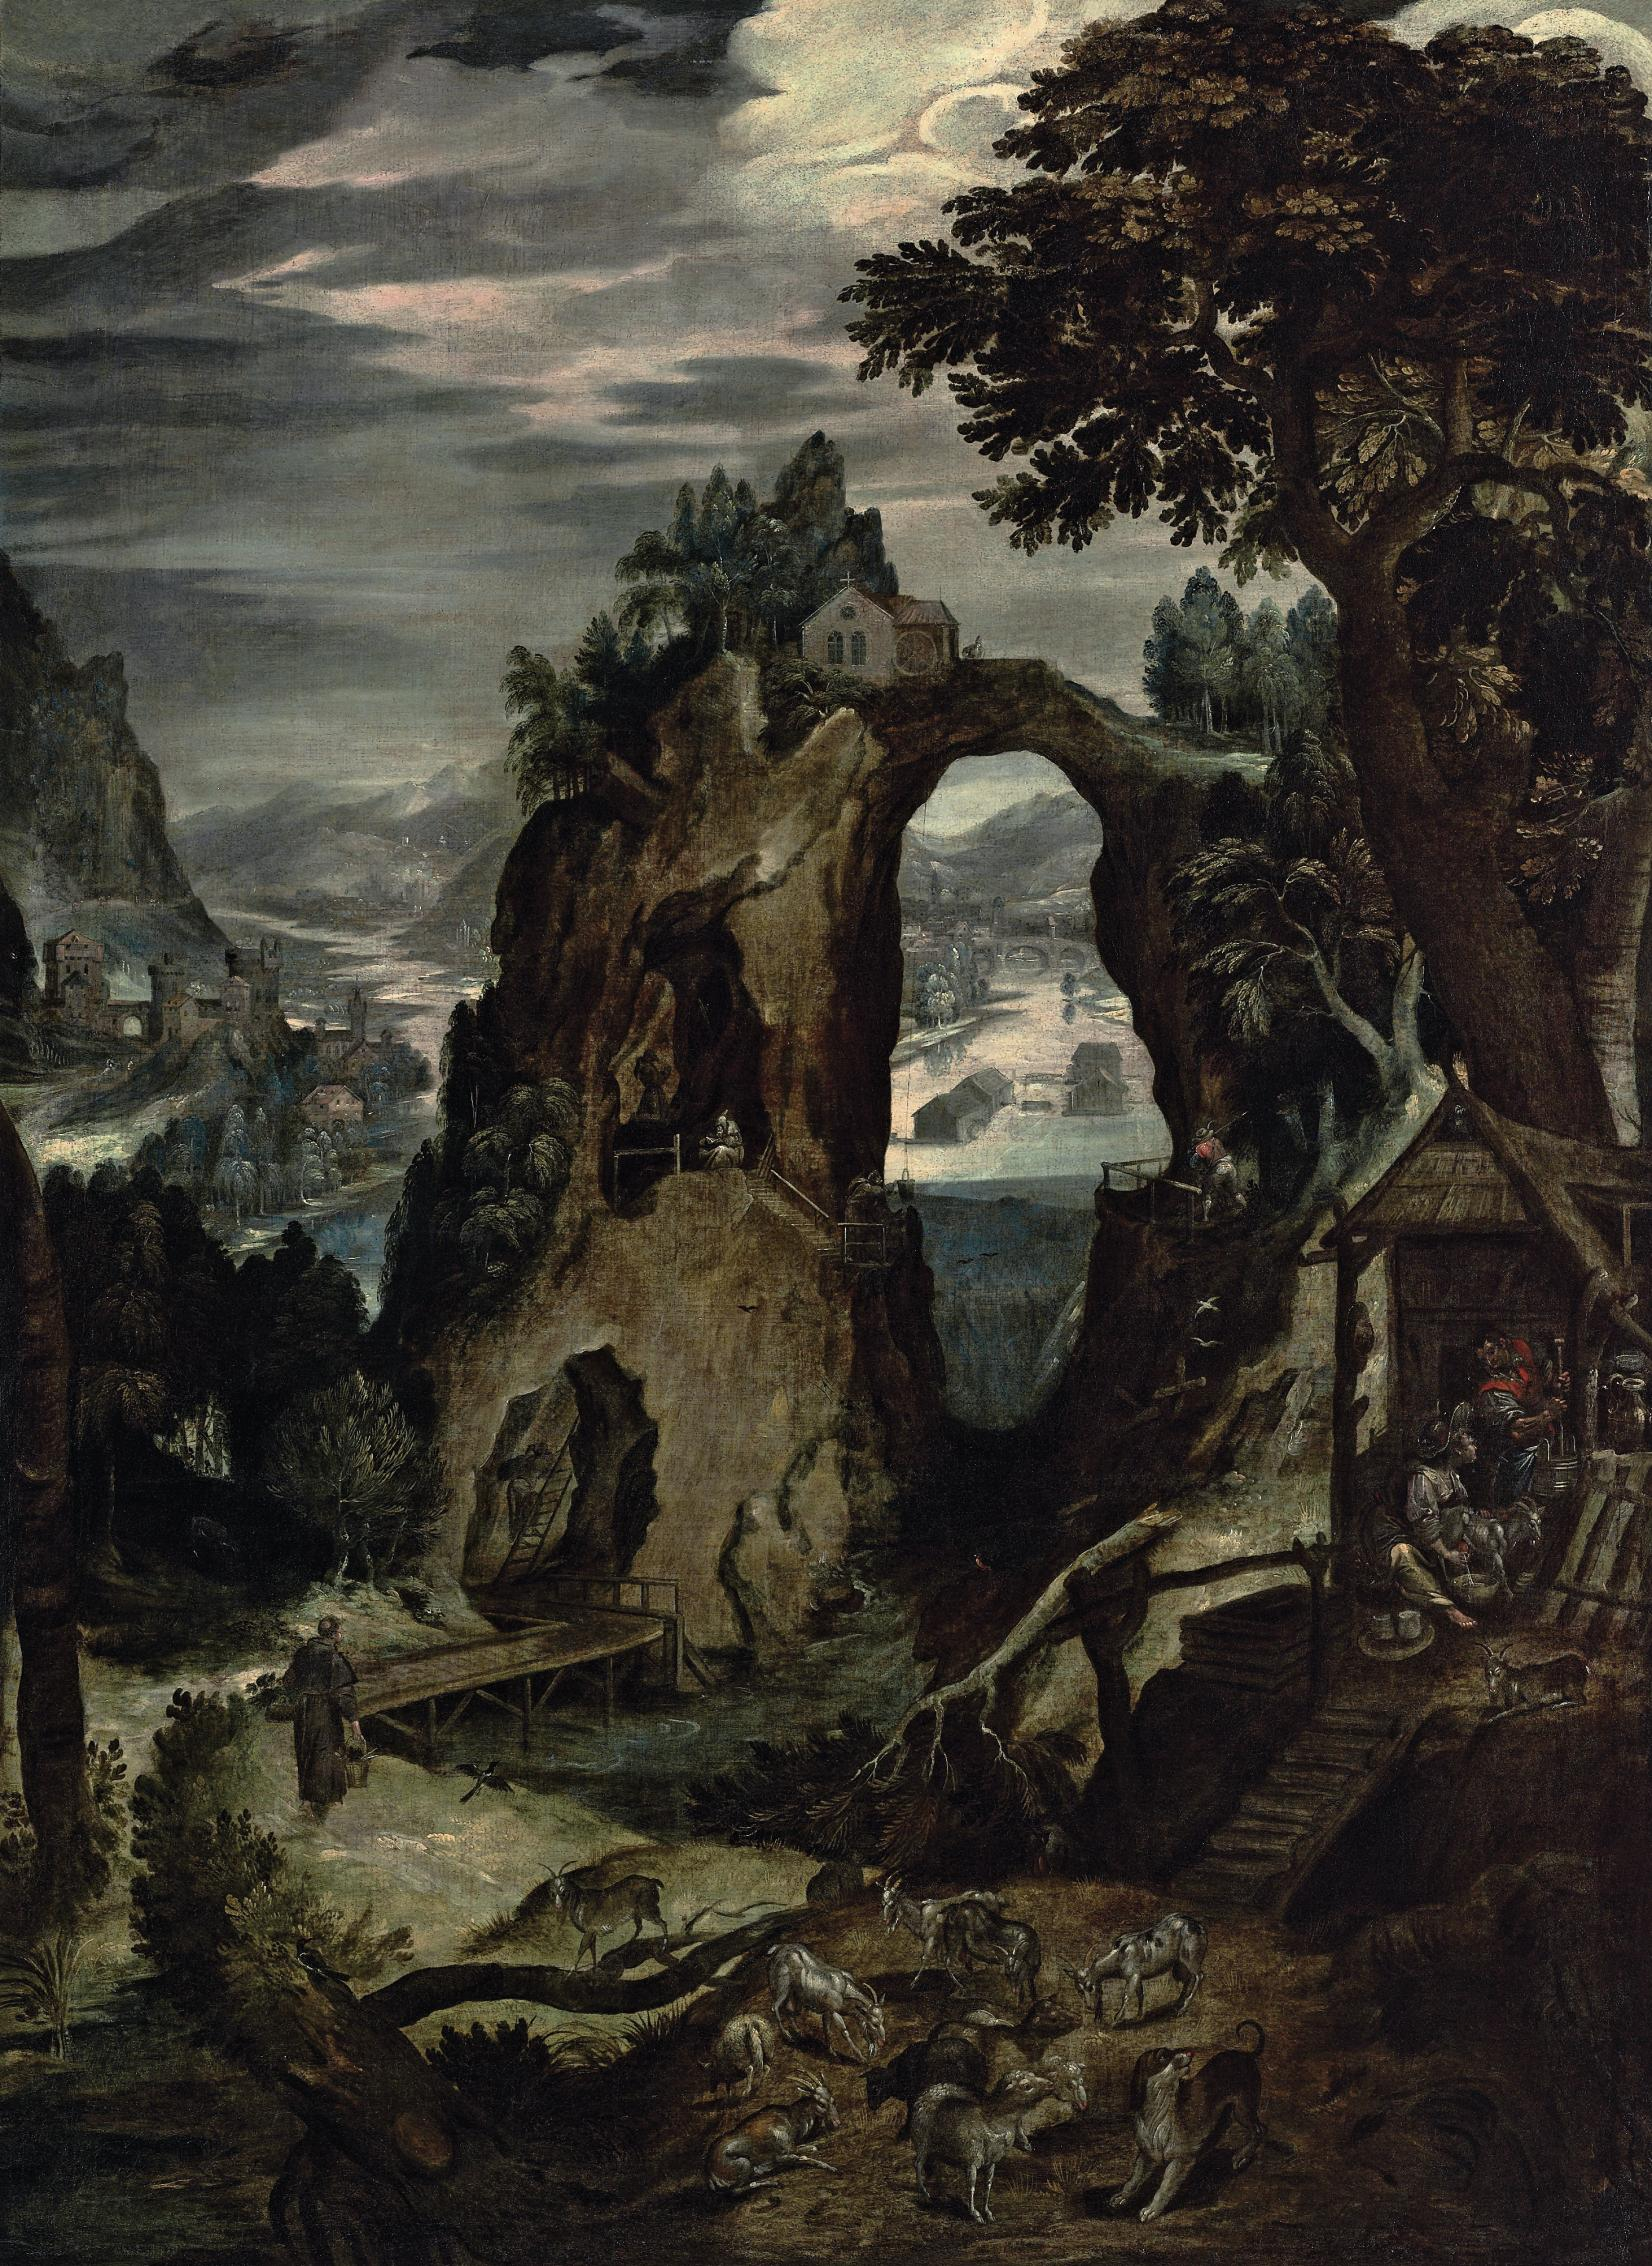 A river landscape with a North Italian city, possibly Verona, in the distance